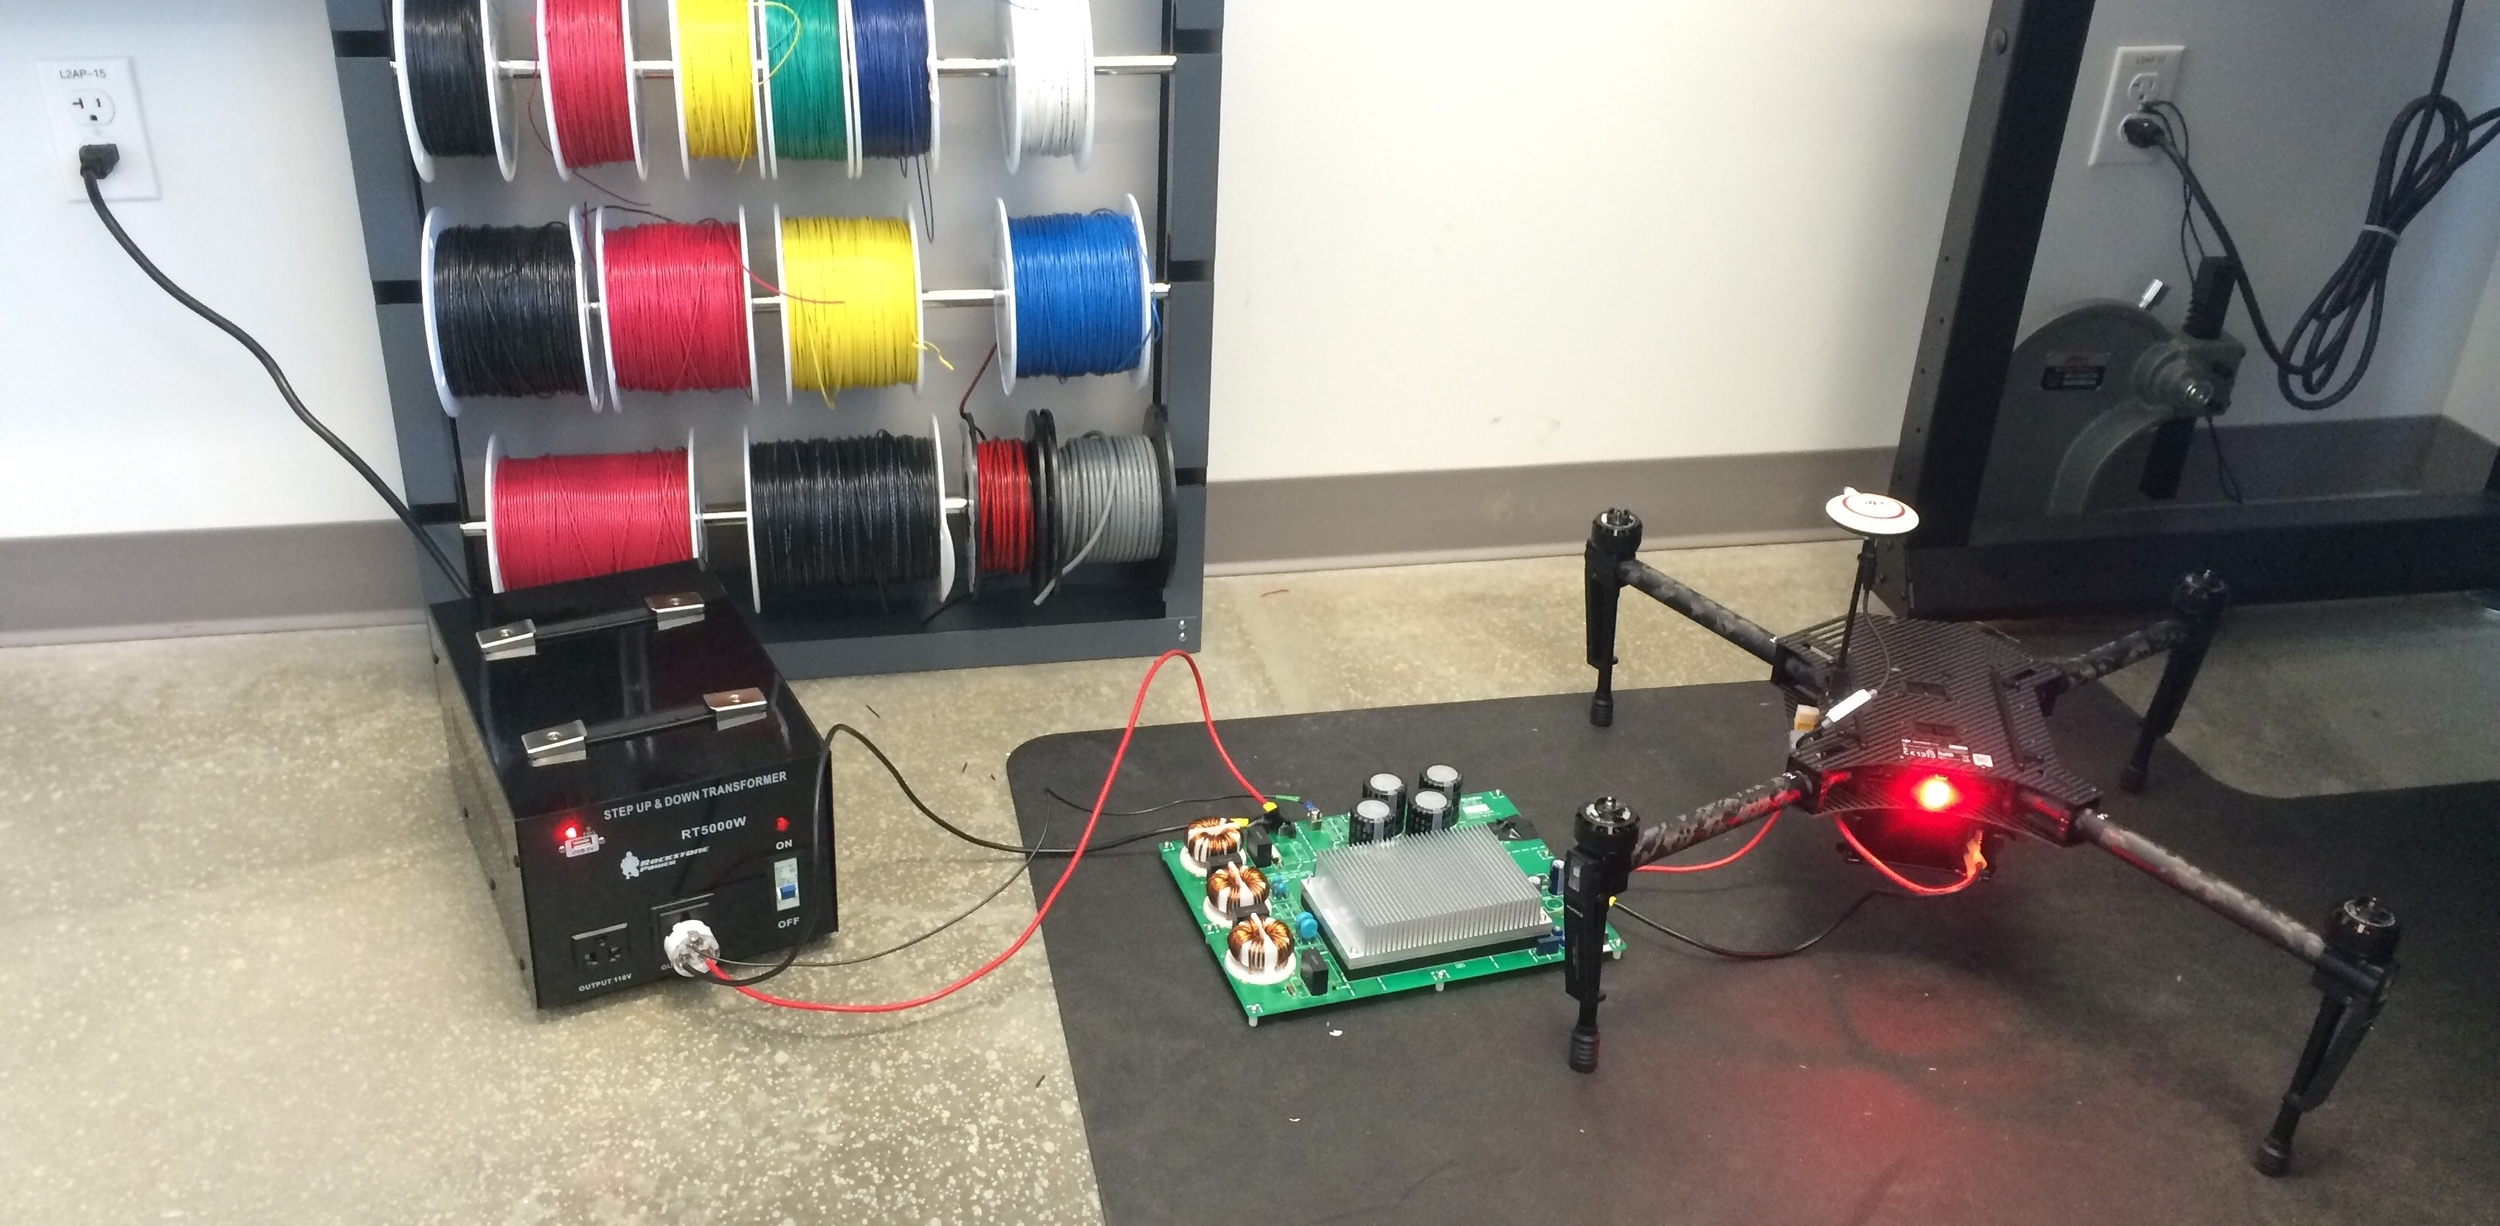 Tethered Drone Project